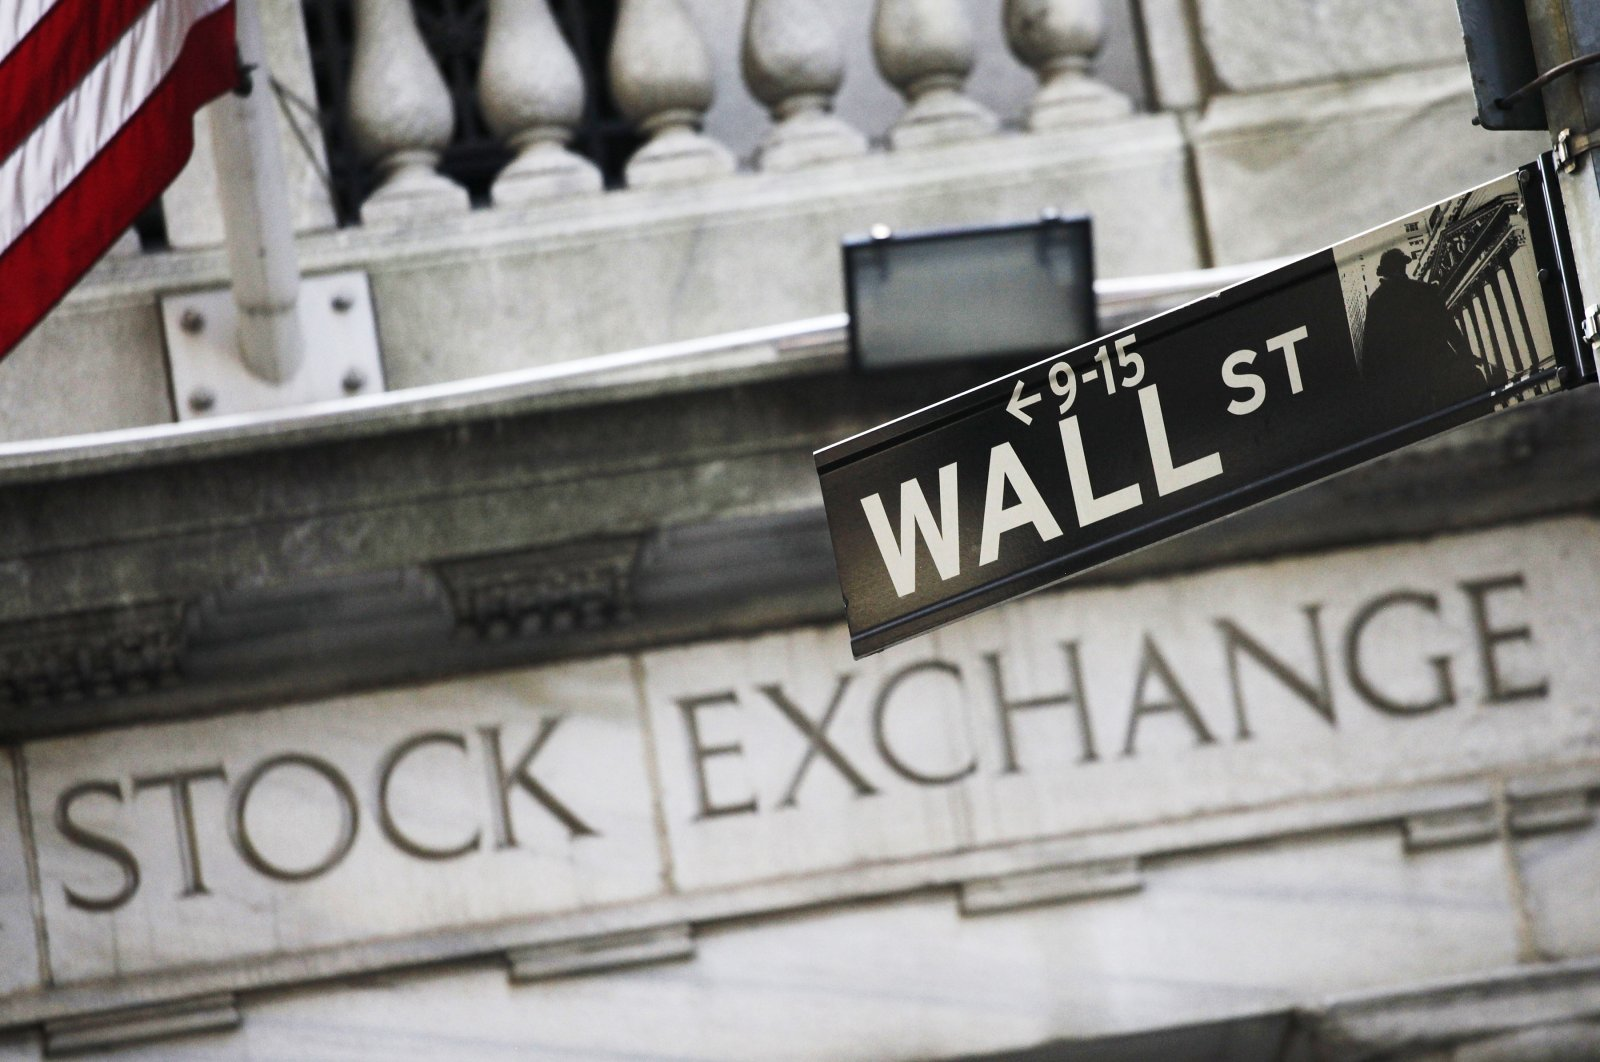 This file photo shows a street sign for Wall Street outside the New York Stock Exchange in New York, July 16, 2013. (AP Photo)